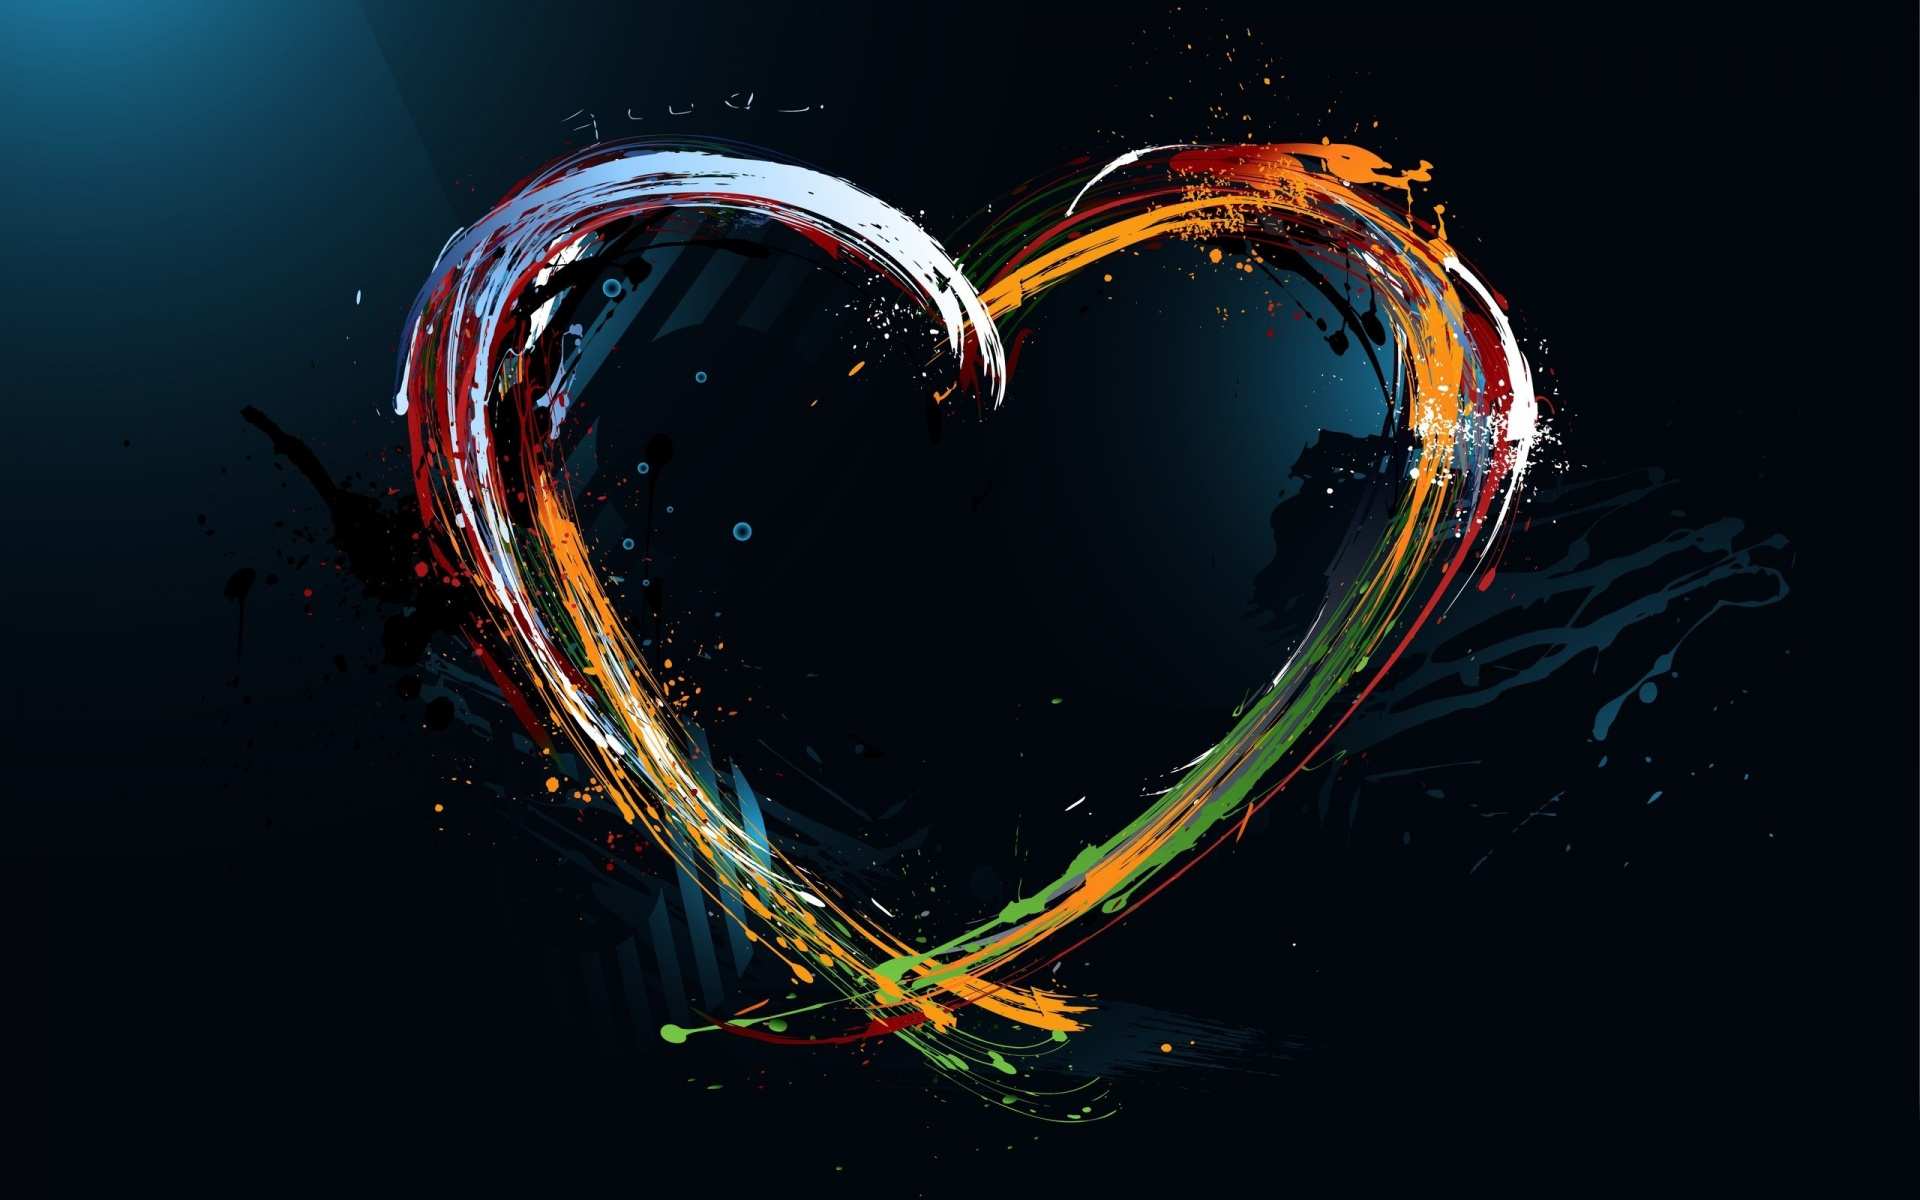 Colourful Heart Wallpaper in 1920x1200 Widescreen